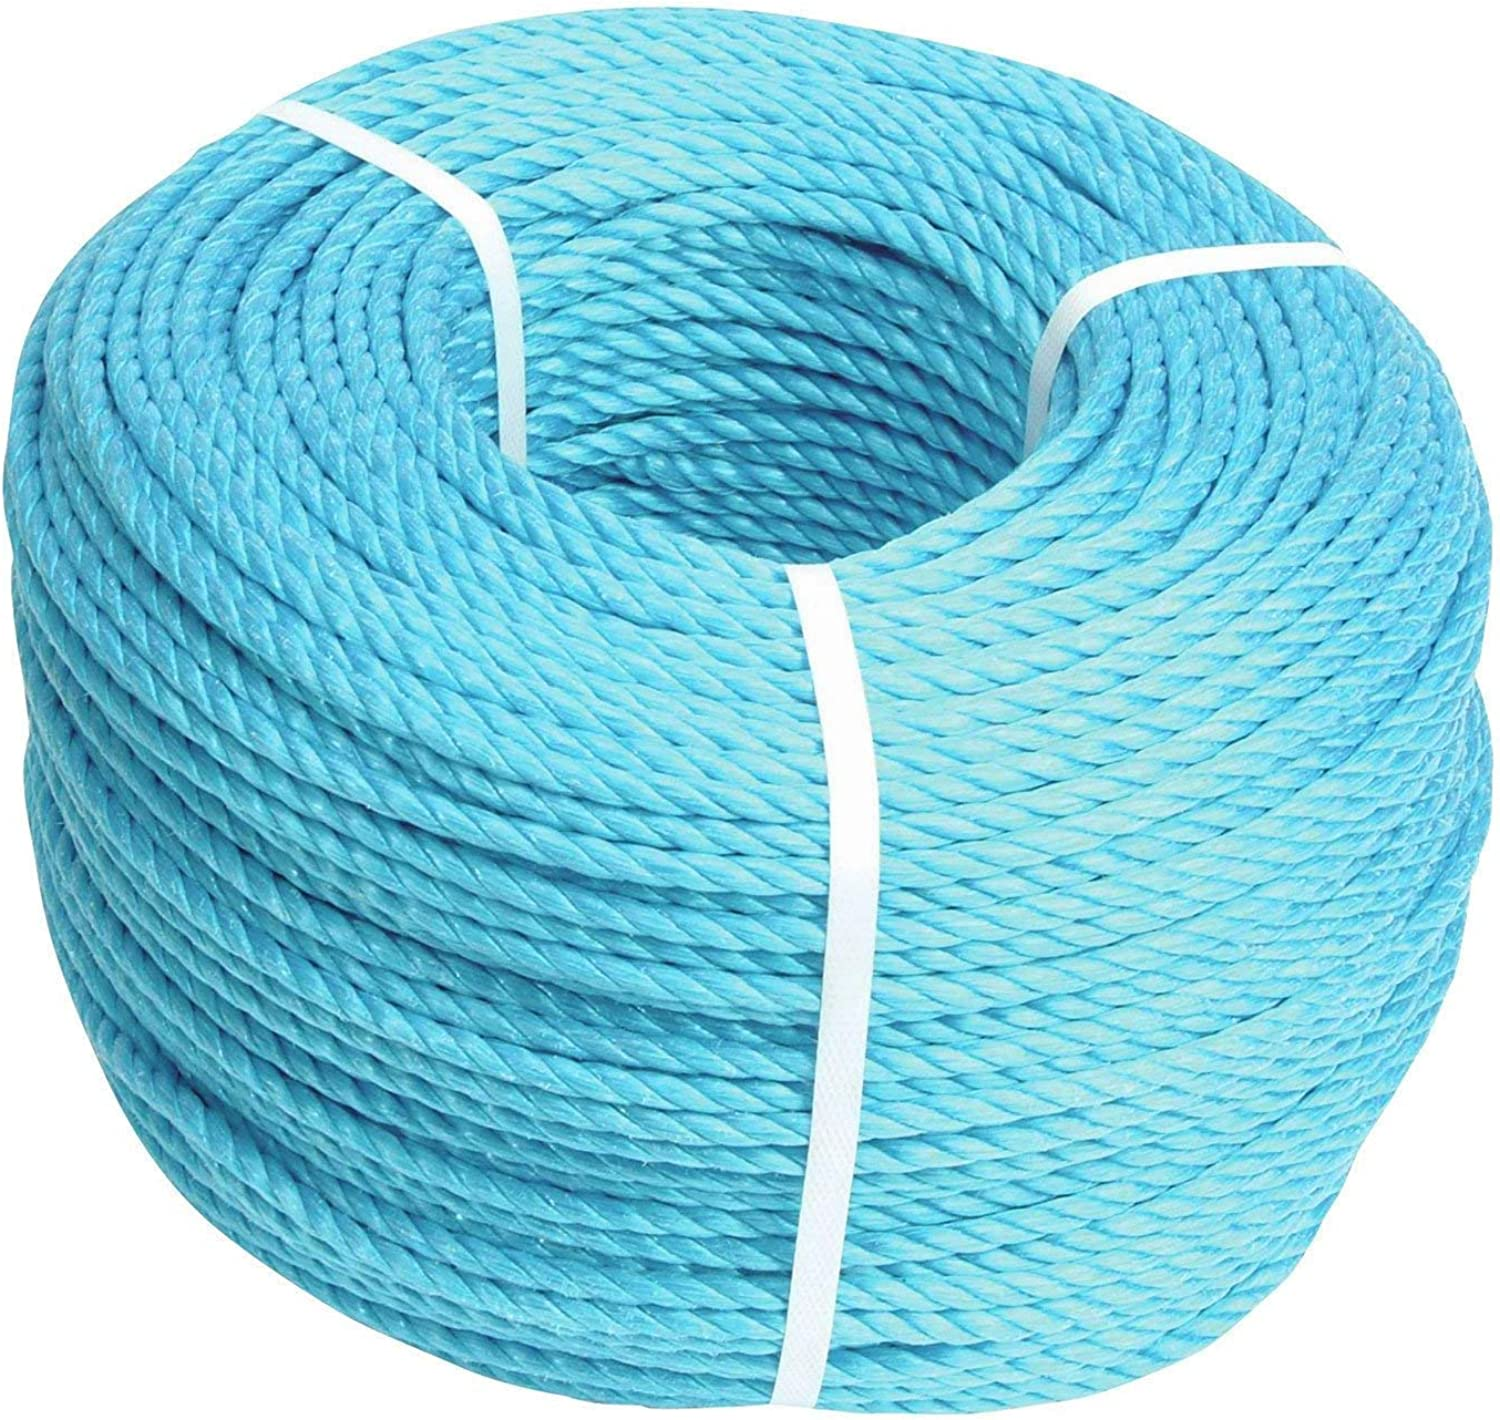 3 x bluee Poly Rope 10mm 30m